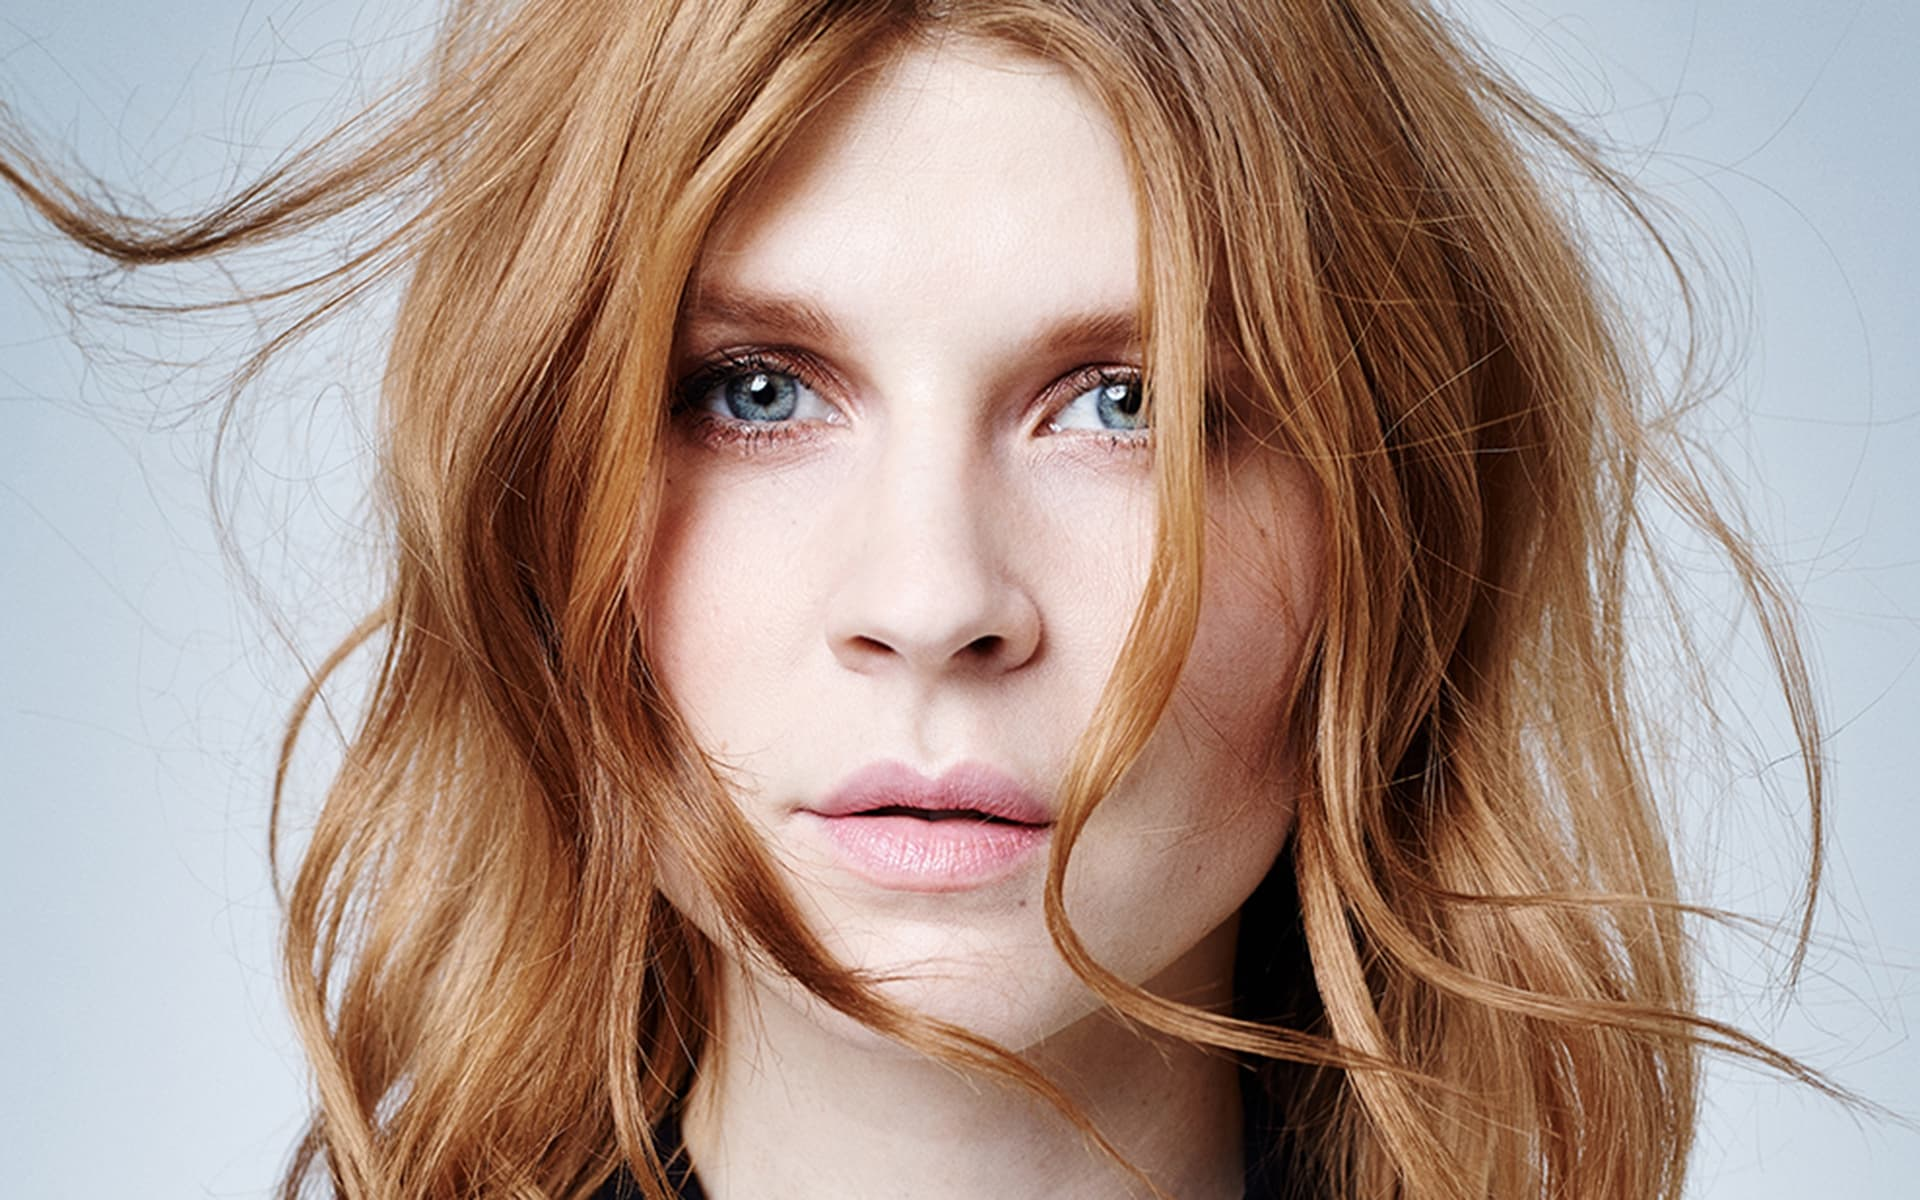 1920x1200 - Clemence Poesy Wallpapers 6